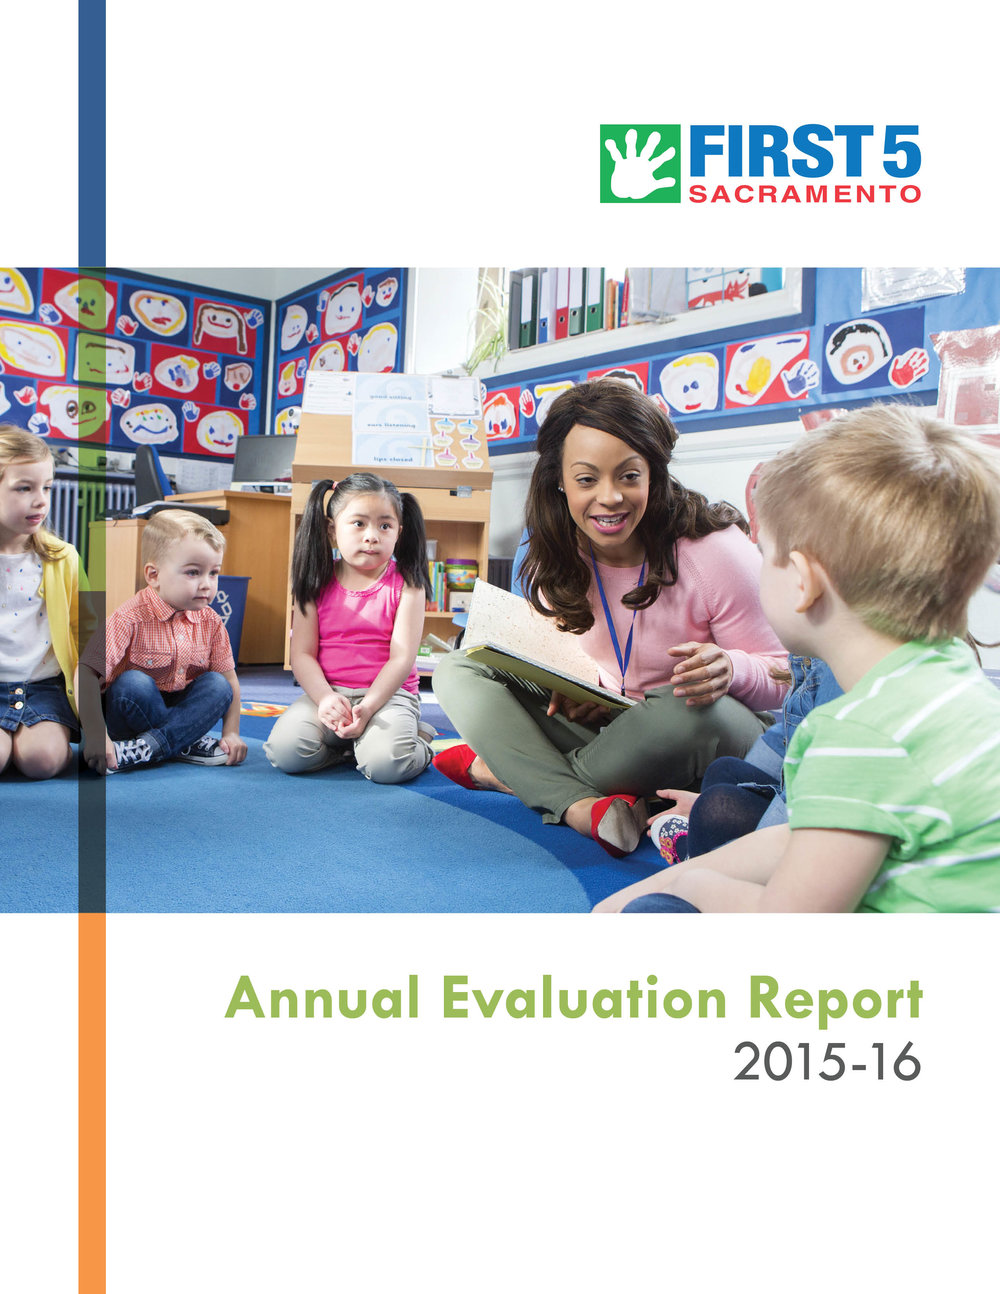 First 5 Sacramento Annual Evaluation Report 2015-16